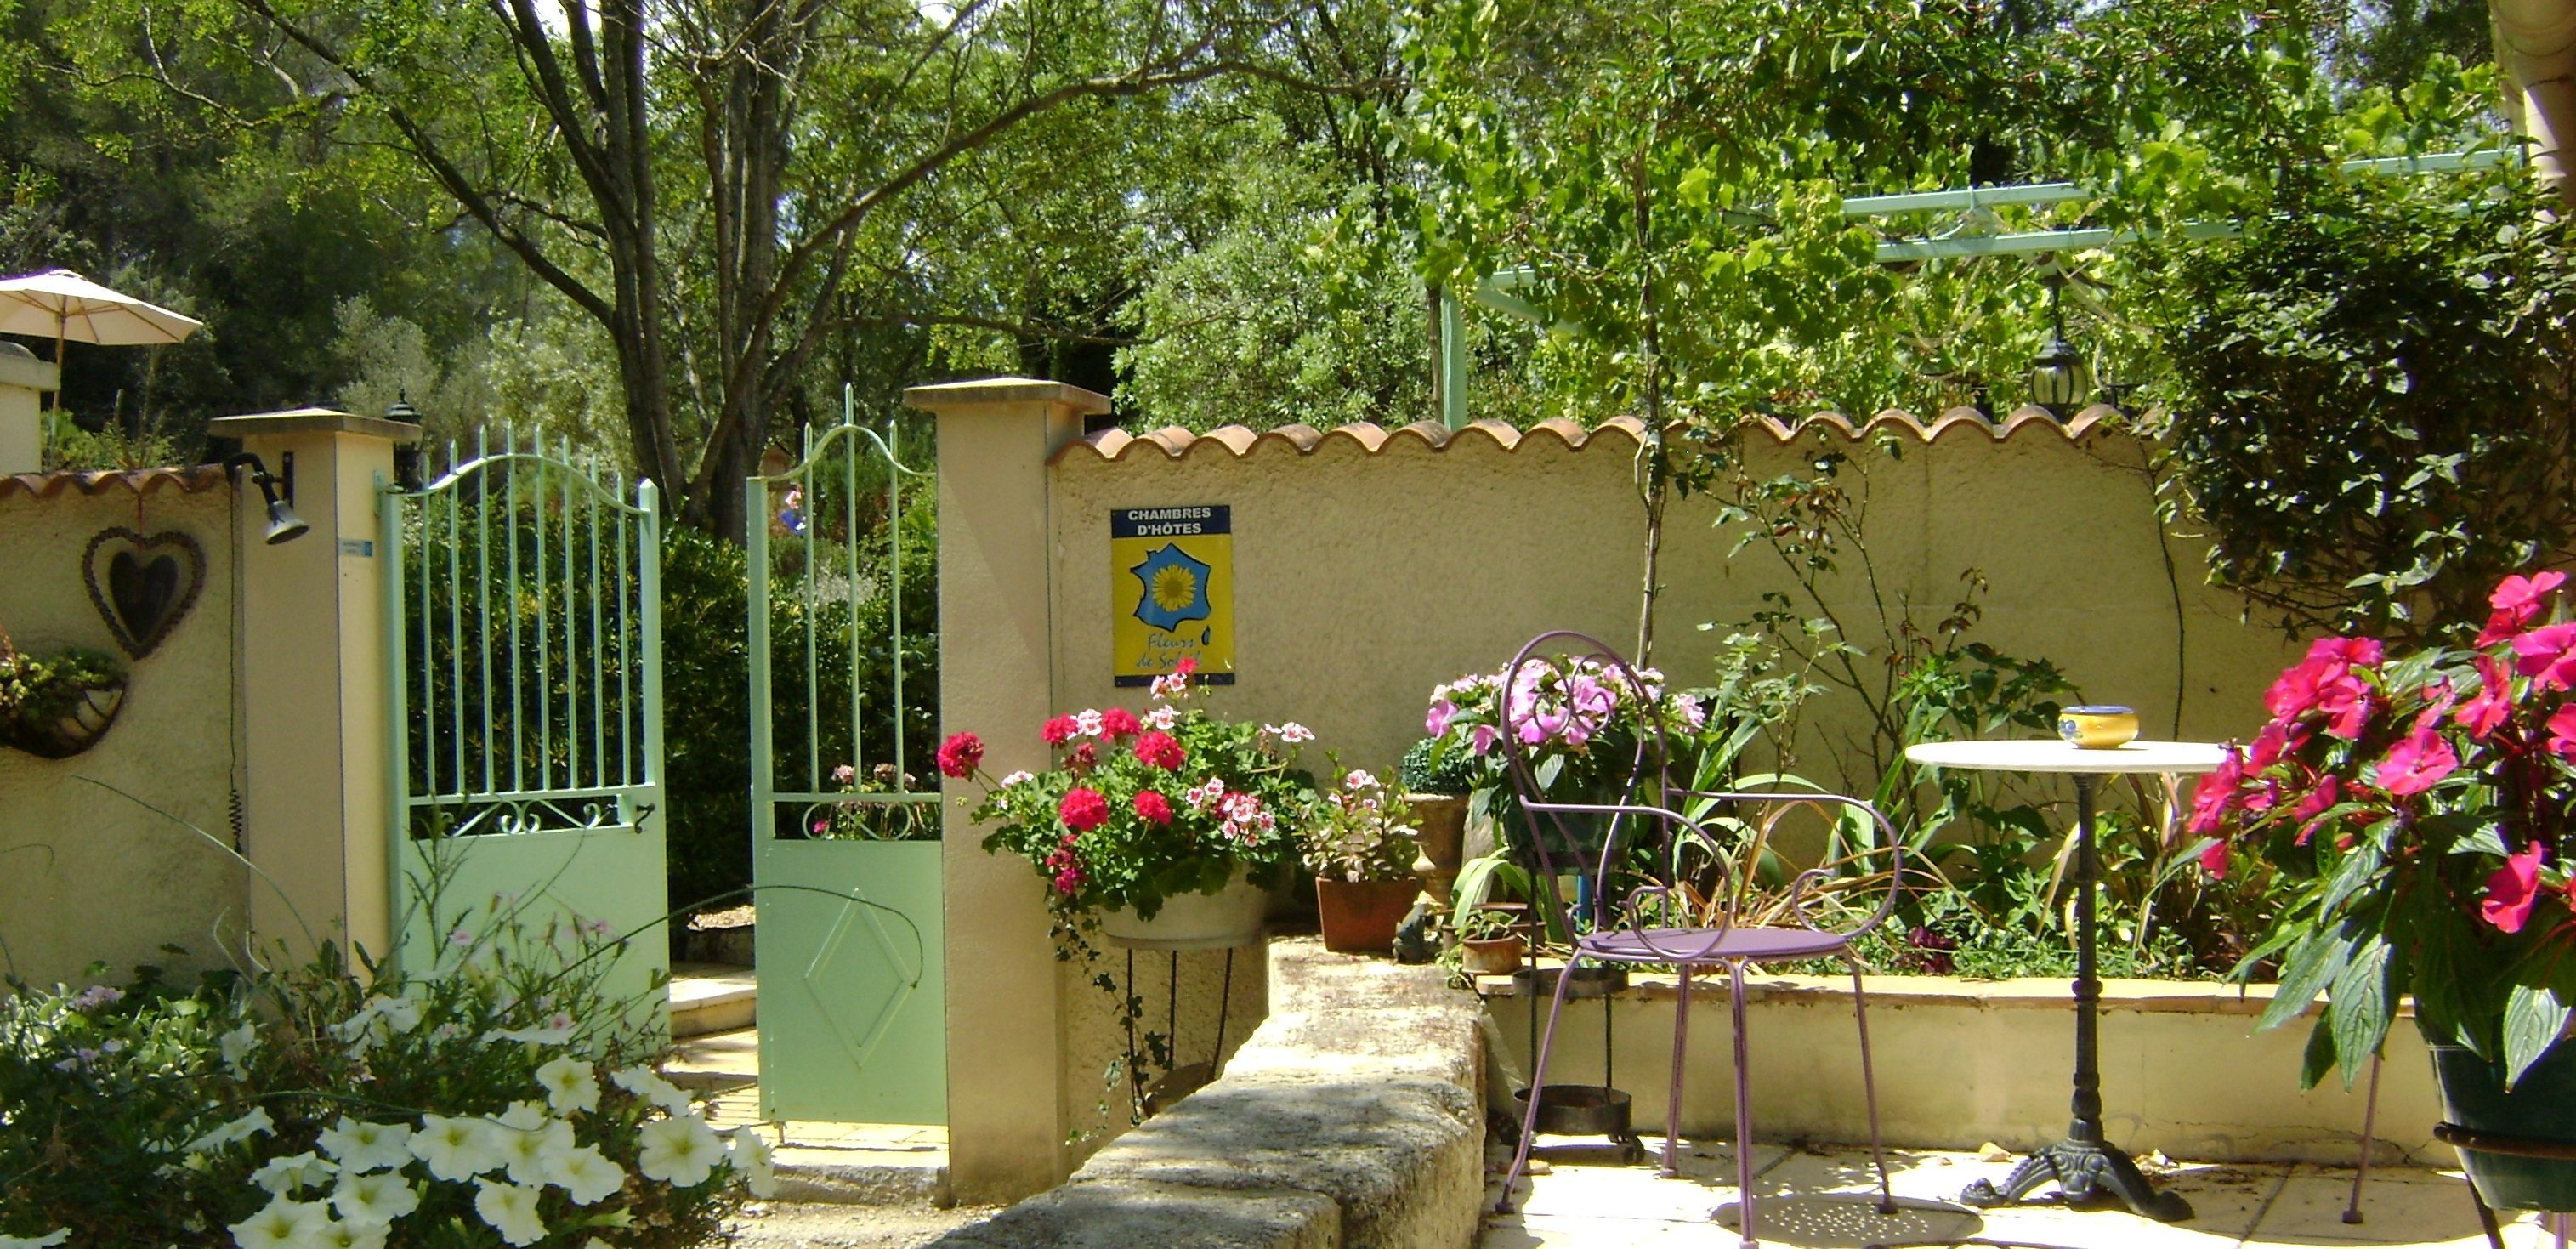 A close up of a flower garden at Domaine a l'Aise.